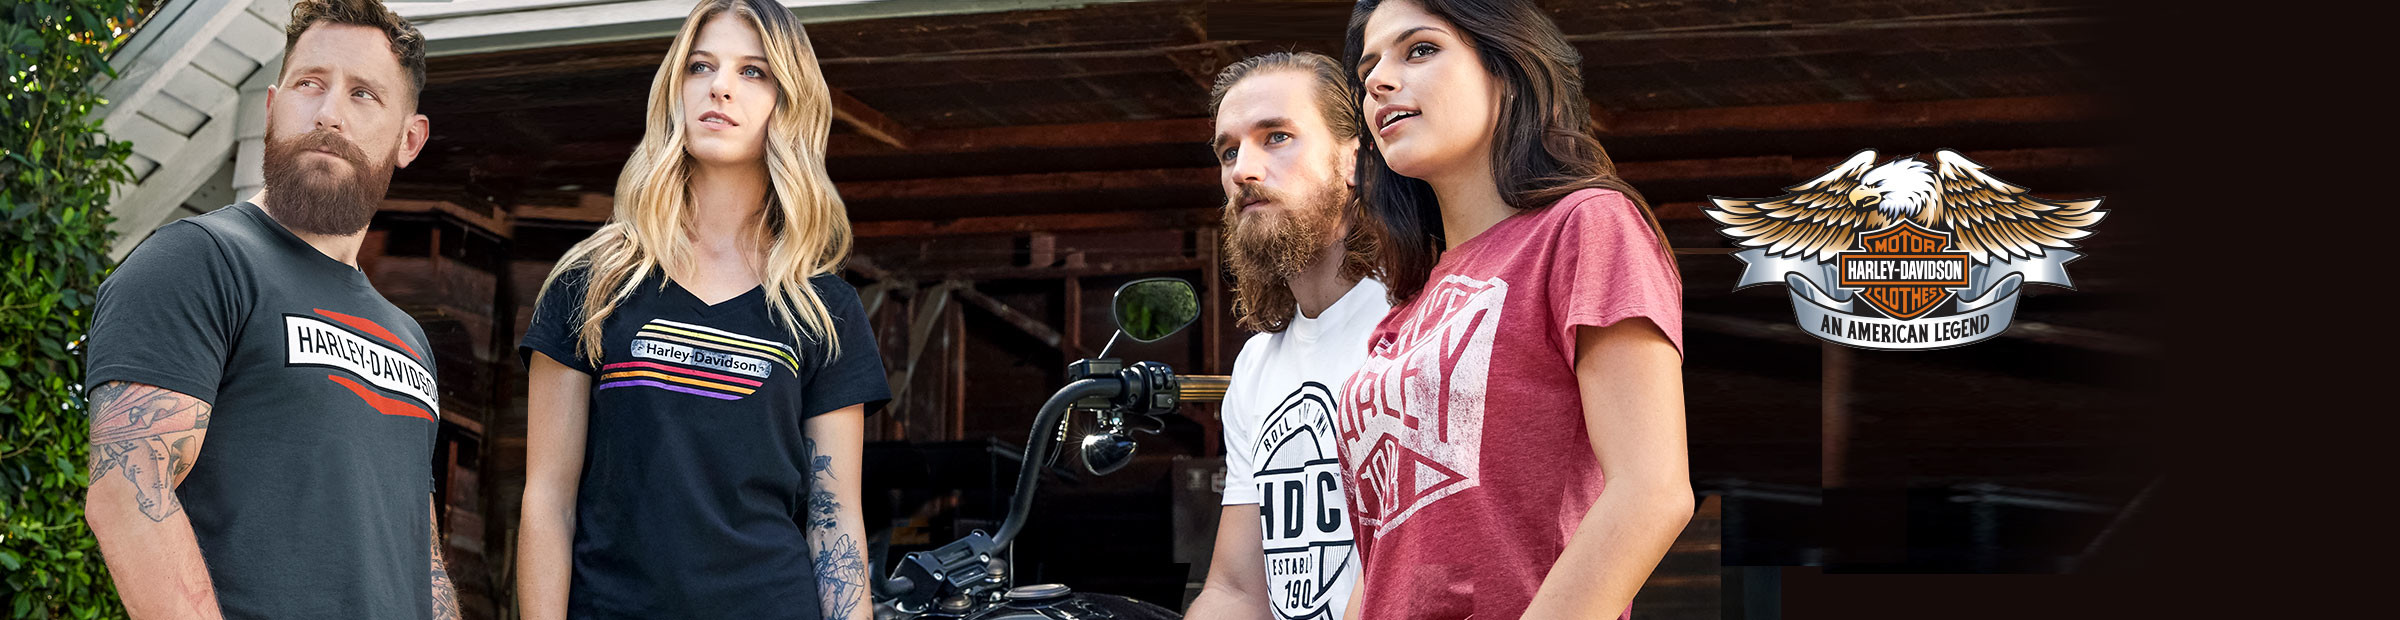 Motorclothes® and Merchandise